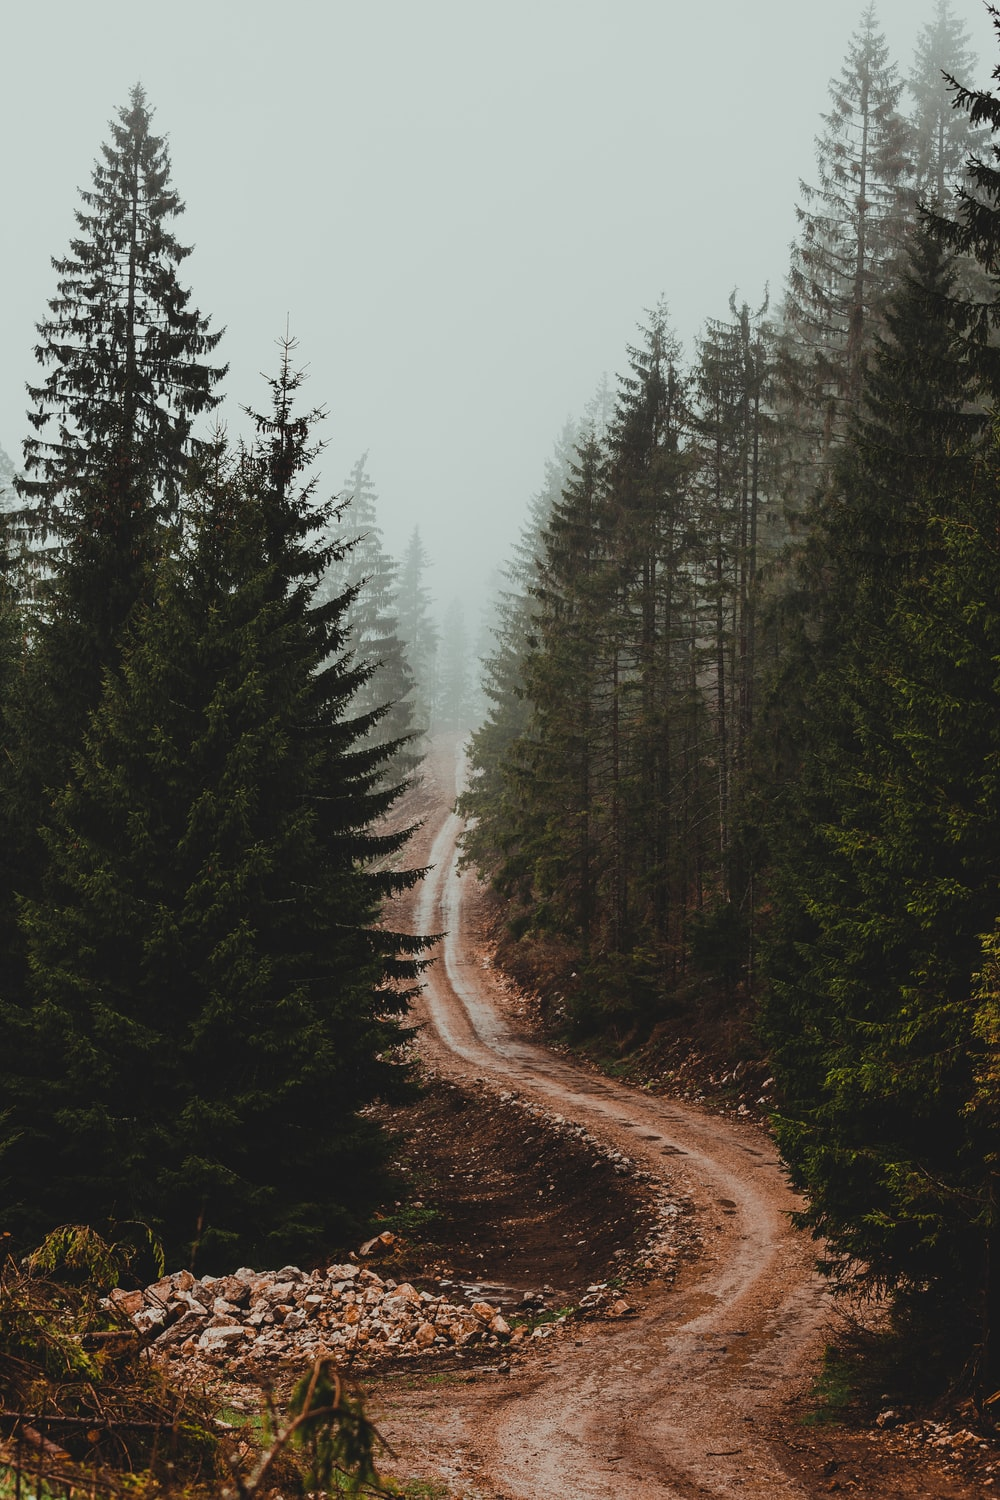 brown dirt road between green trees during foggy day